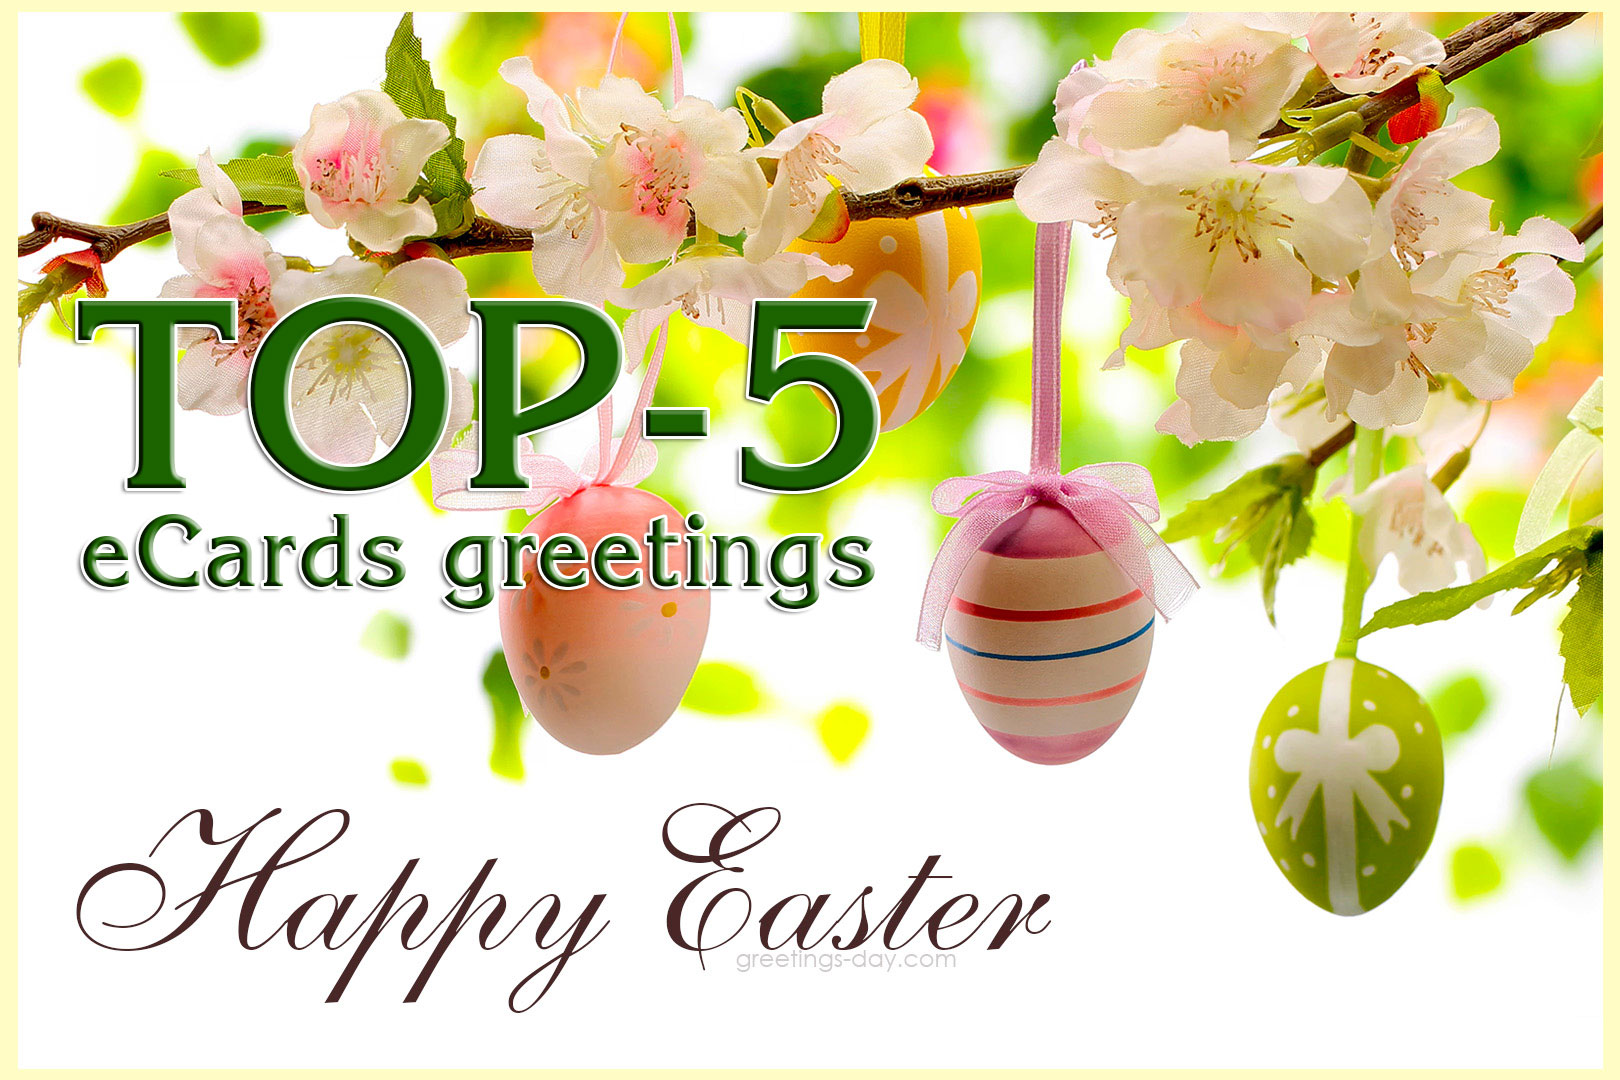 TOP-5 greetings Happy Easter eCards